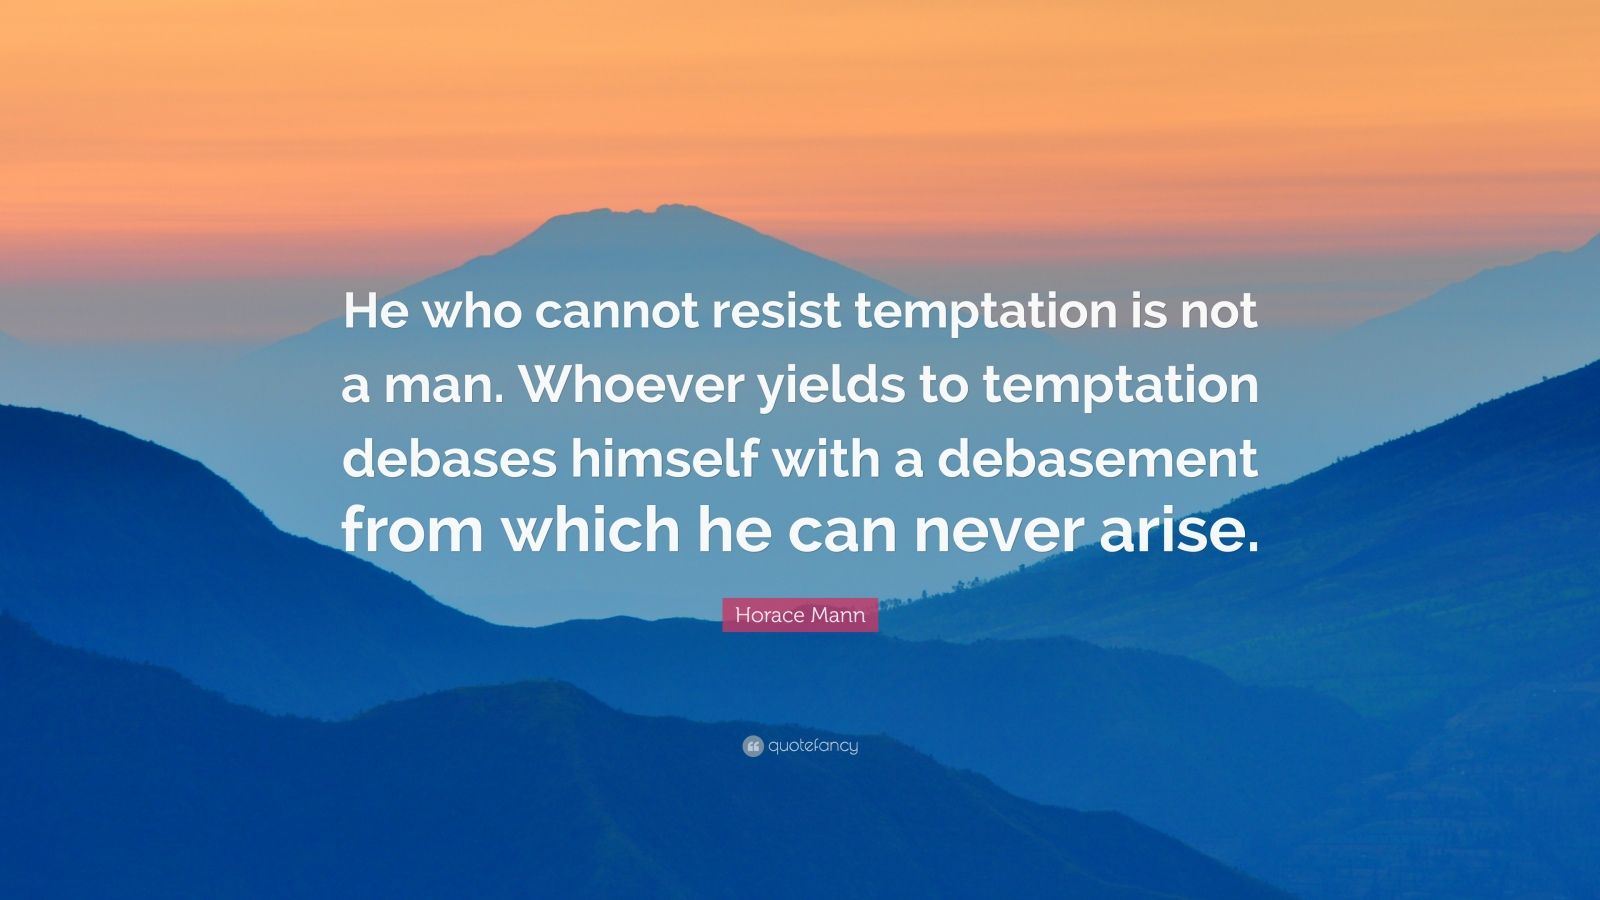 """Horace Mann Quote: """"He who cannot resist temptation is not a man. Whoever yields to temptation debases himself with a debasement from which he can never arise."""""""